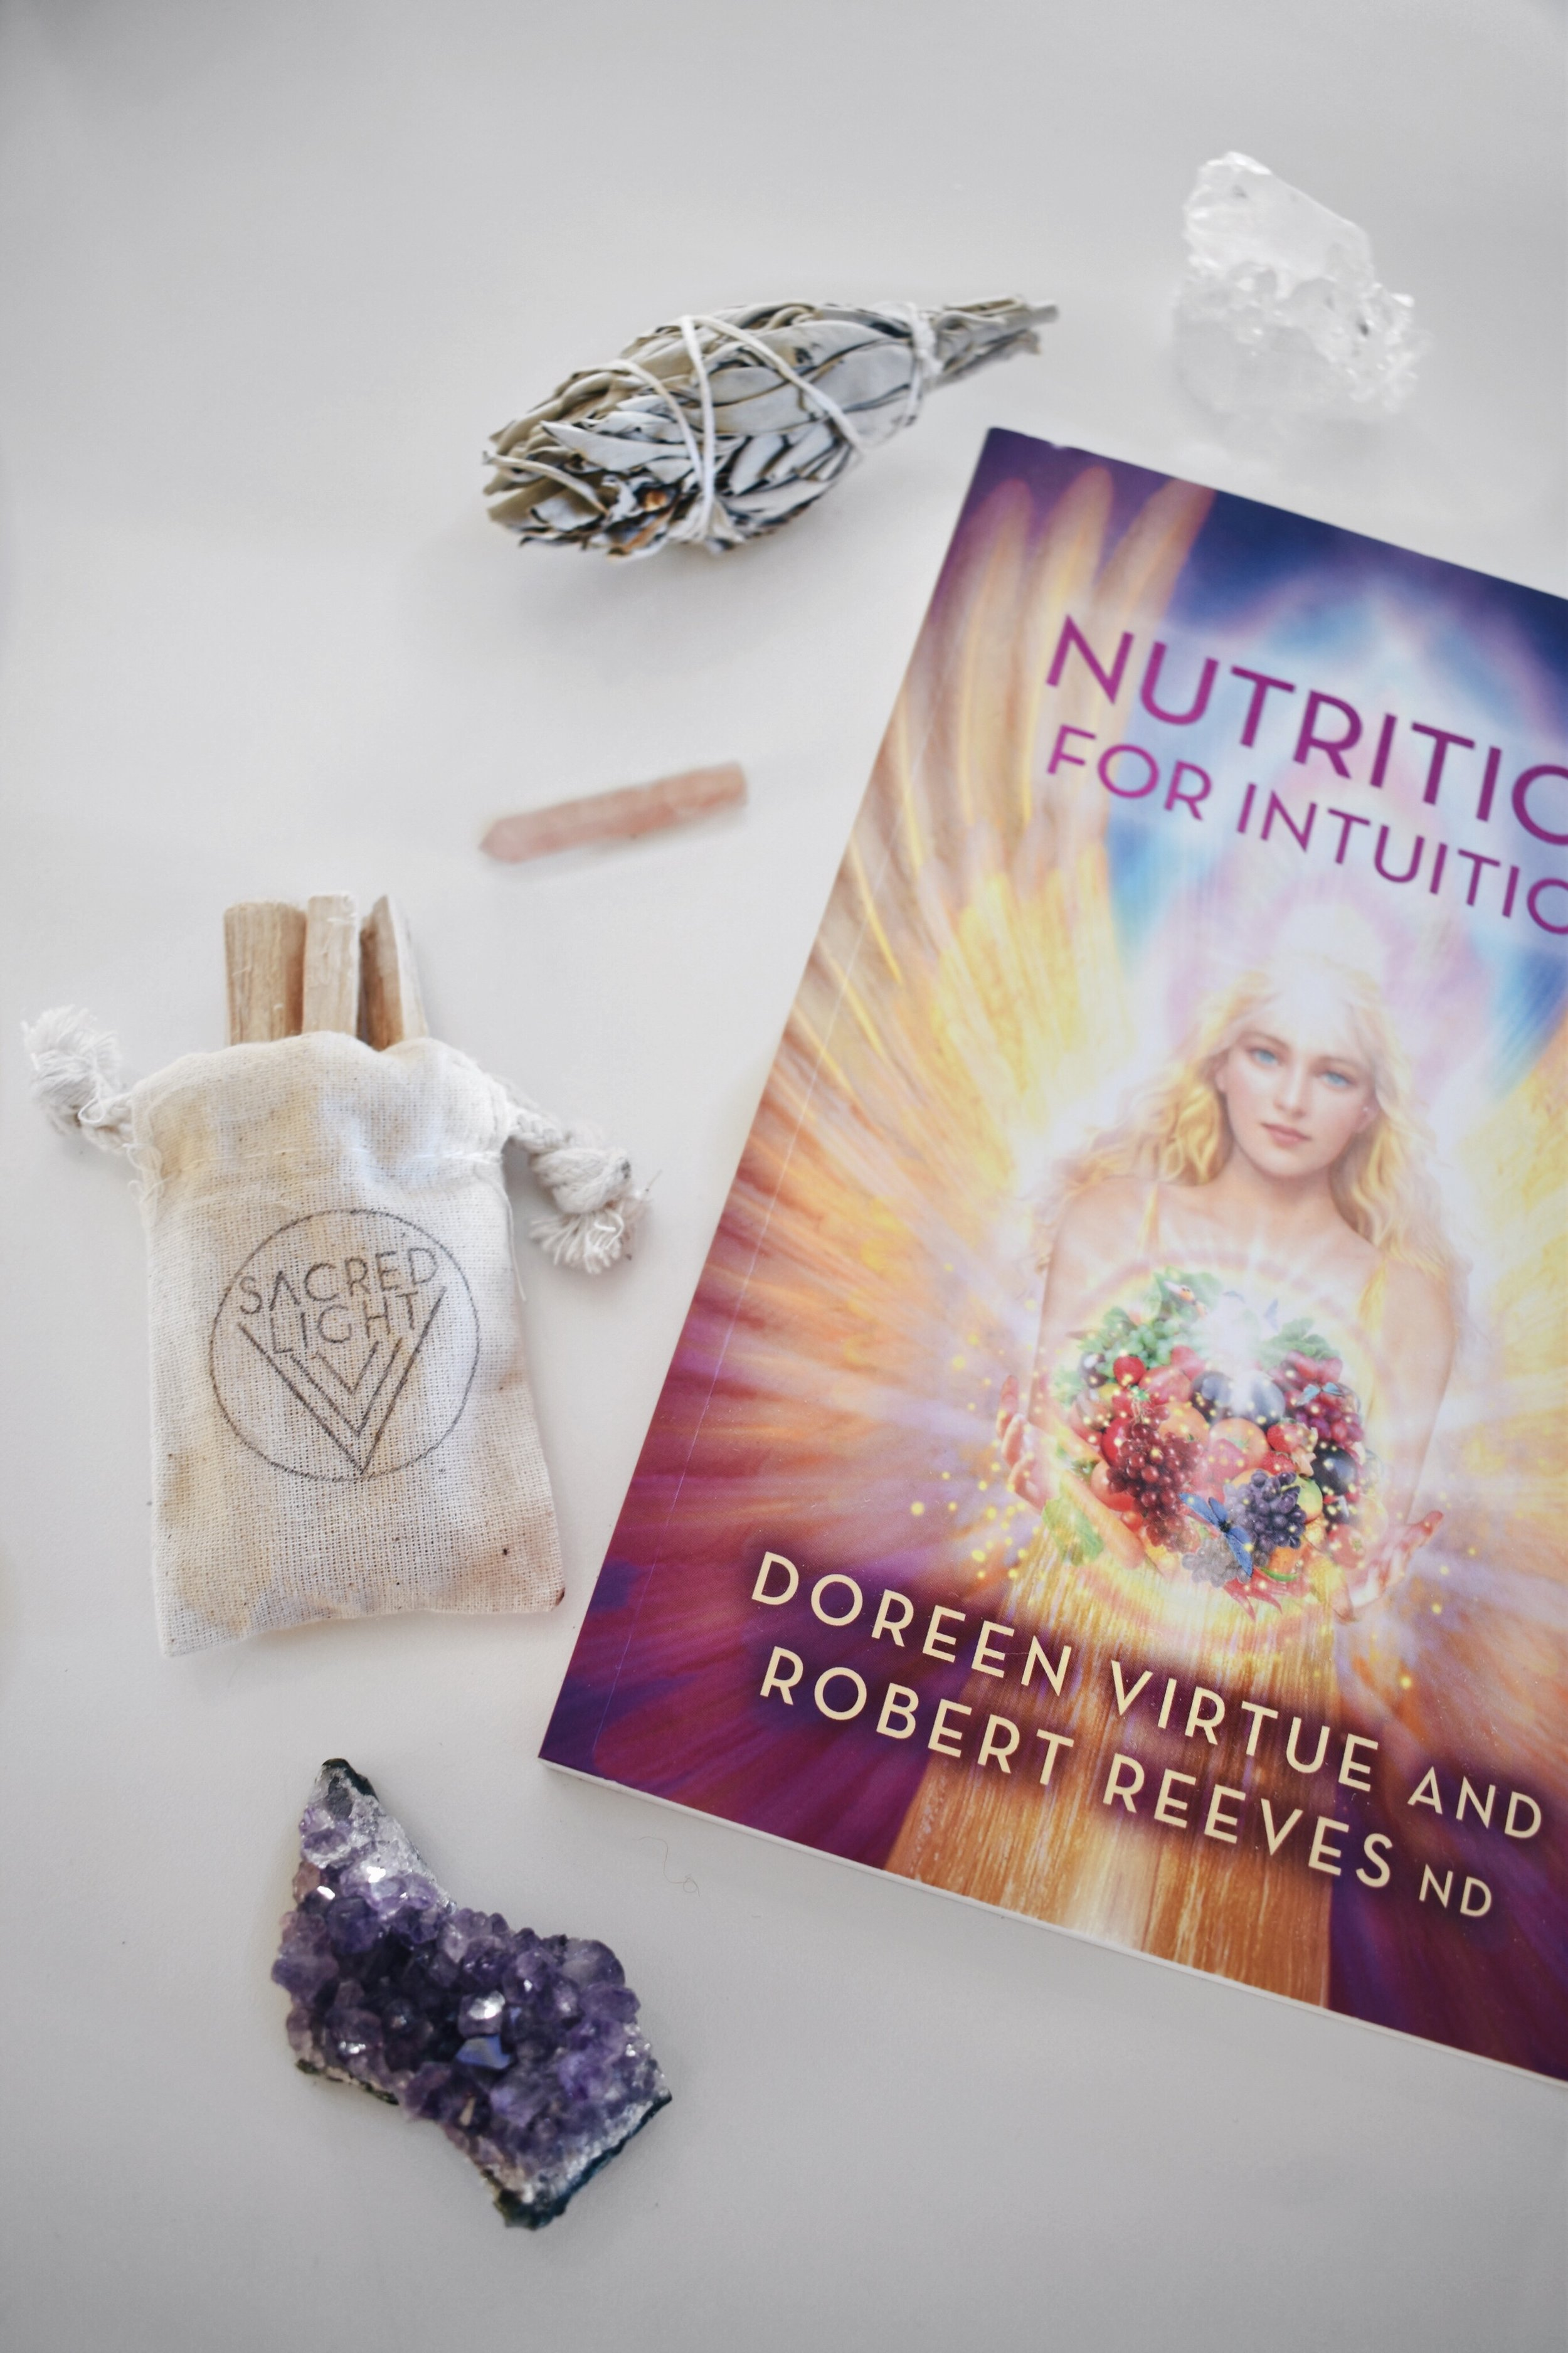 Honestly, - it would definitely be fair to say that I have an addiction for books about health, spirituality, yoga, wellness, and food. I buy tons, even though I might not have time to read them all. One of my latest finds is this amazing book, Nutrition for Intuition written of one of my favourites Doreen Virtue, and it is about food and spirituality. It talks about the importance of eating the right food in order to be able to feel your gut and intuition. It's really interesting and I can highly recommend it if you're also interested in these subjects.